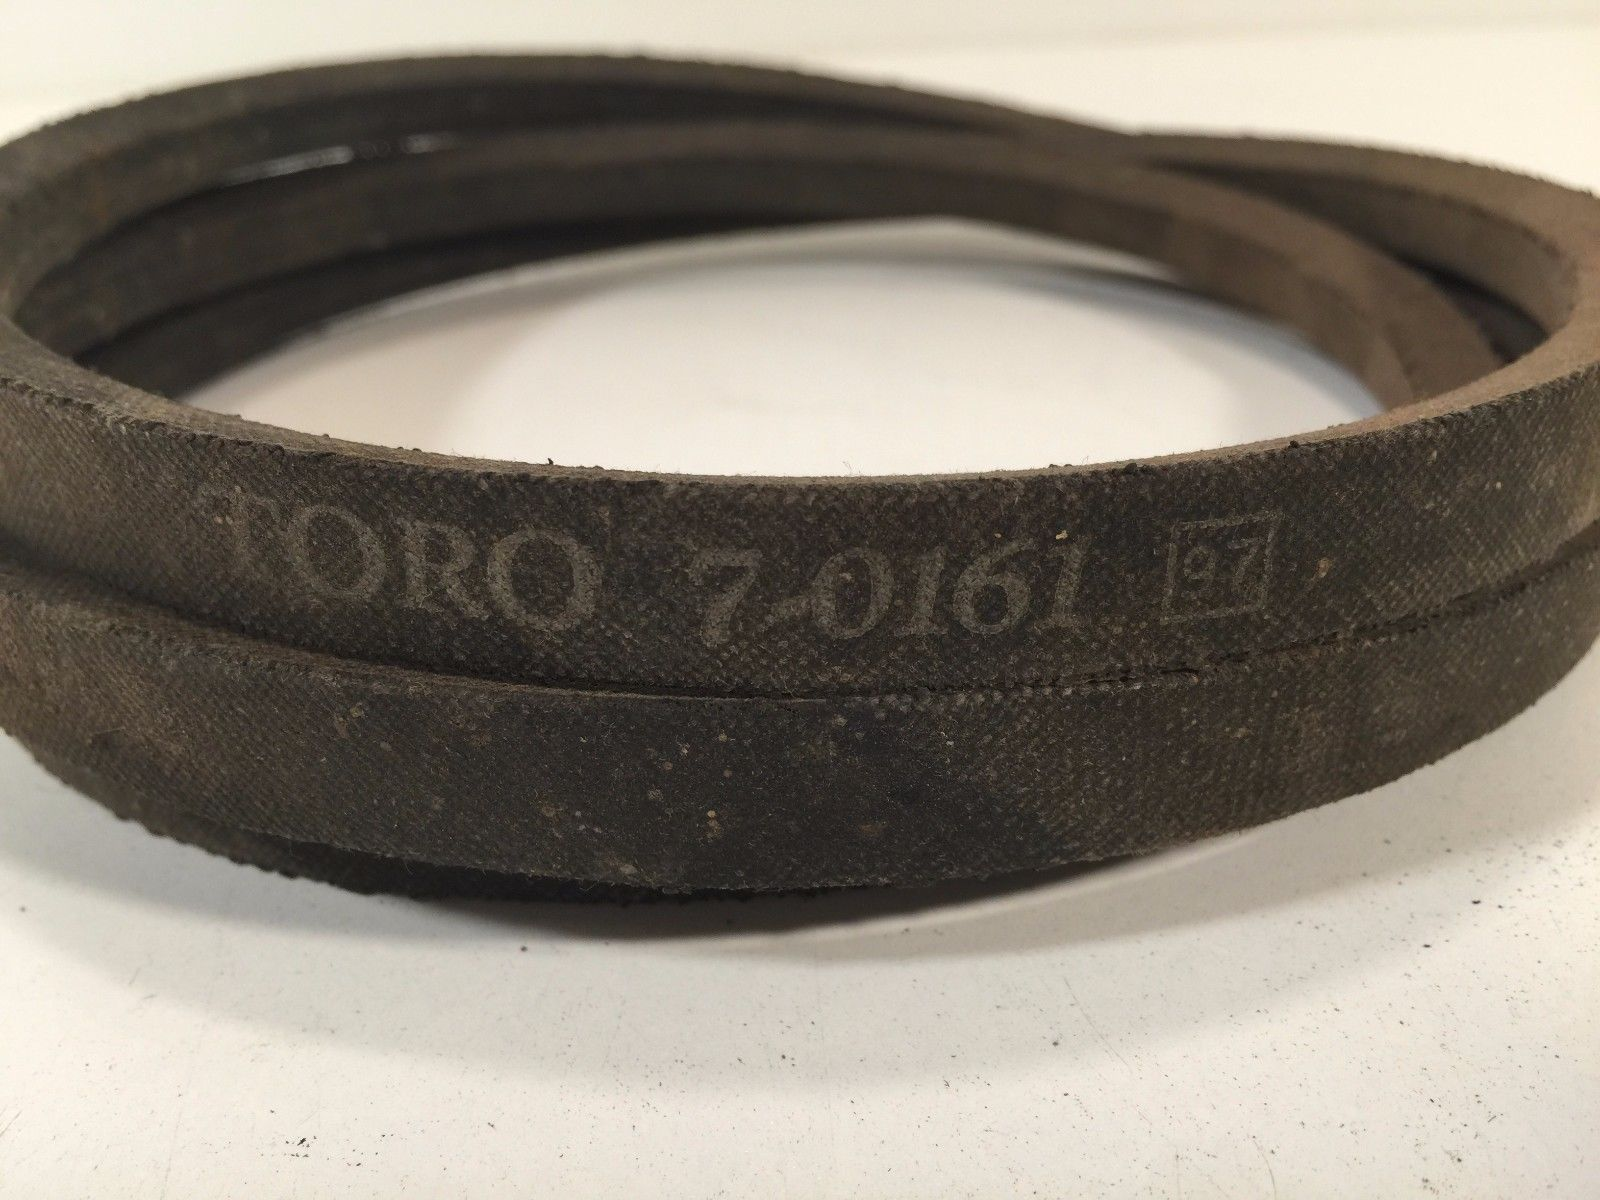 Genuine Toro 7-0161 Replacement Drive Belt New Old Stock